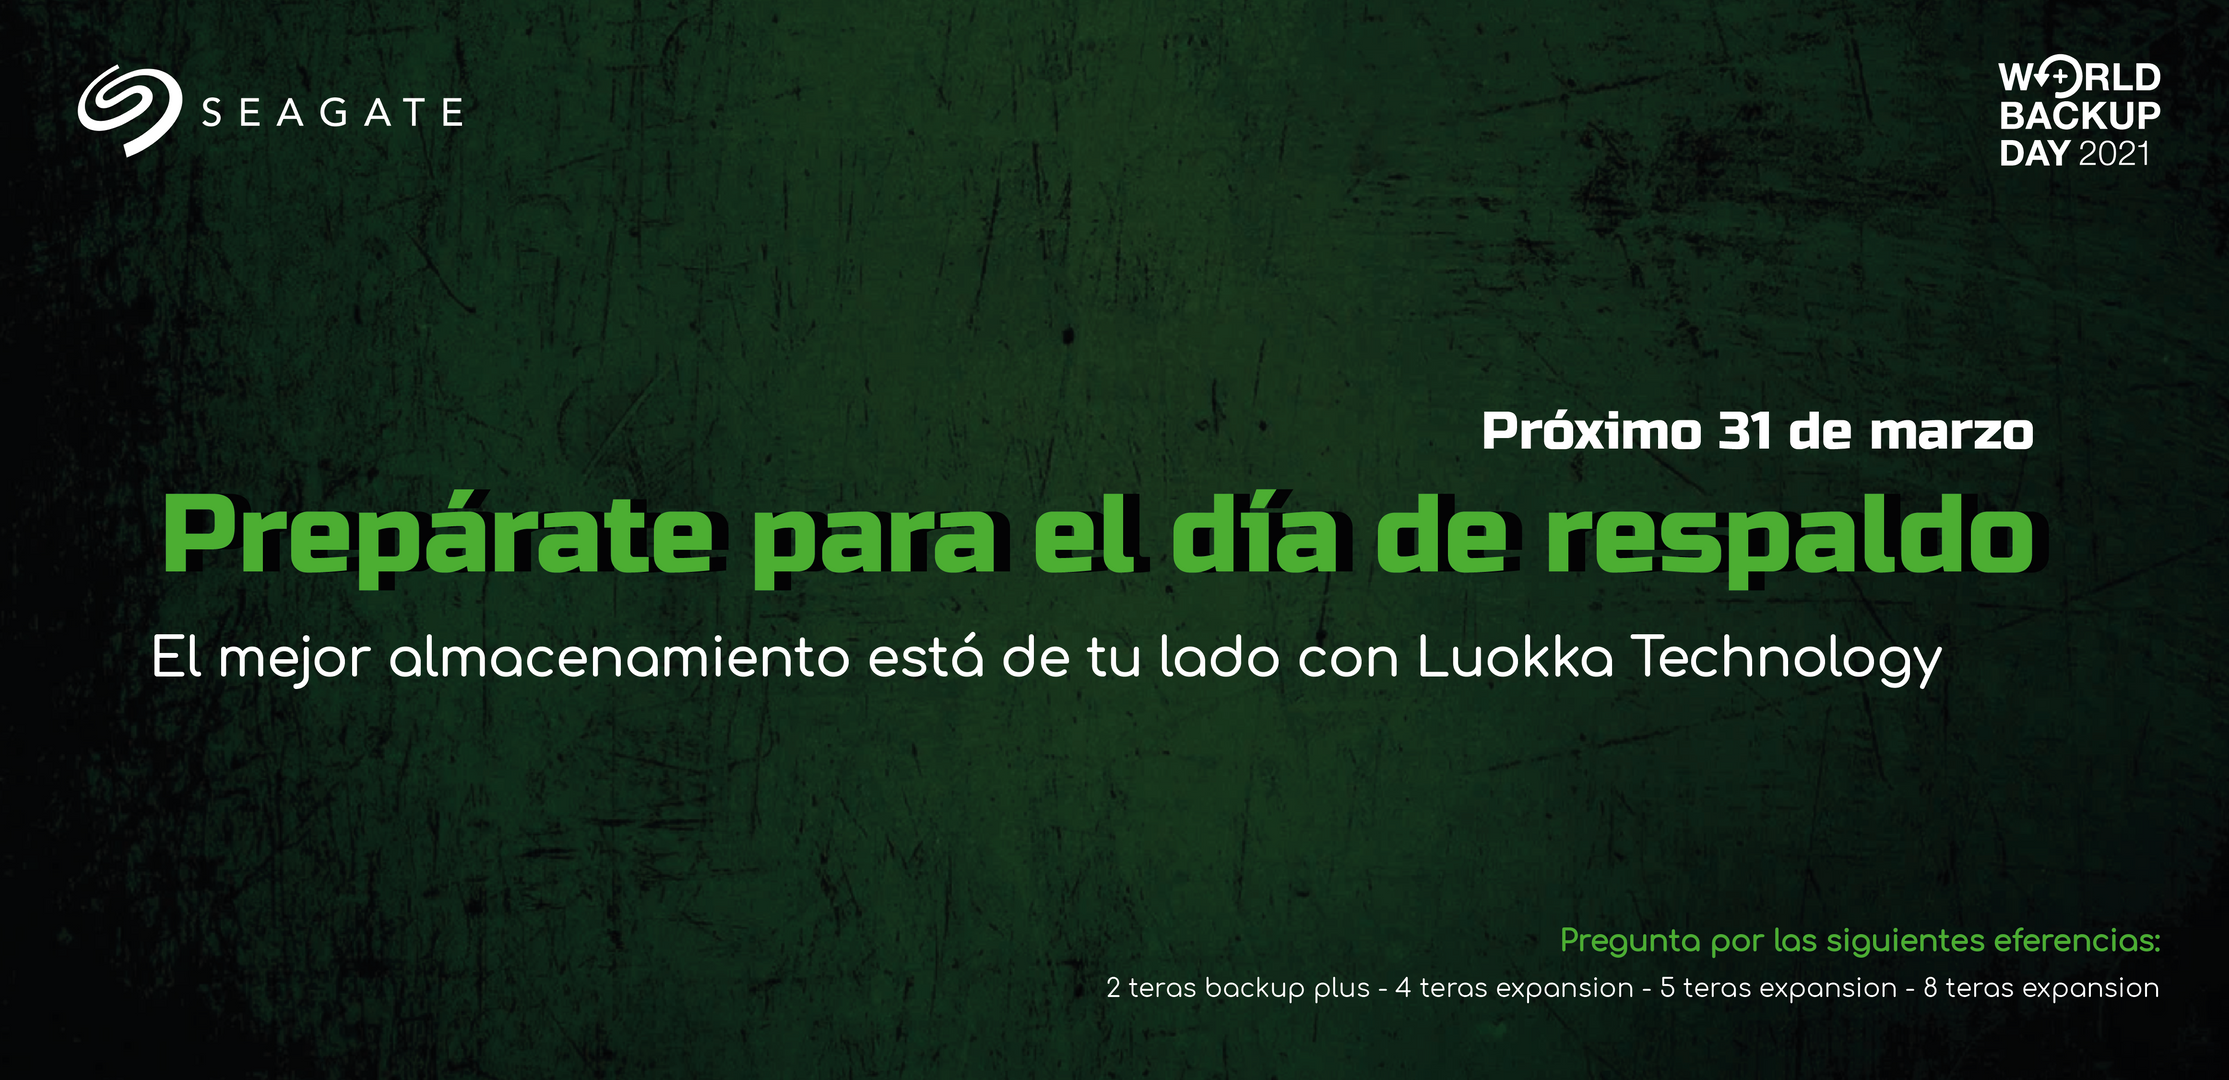 seagate + luokka_banner 1.png